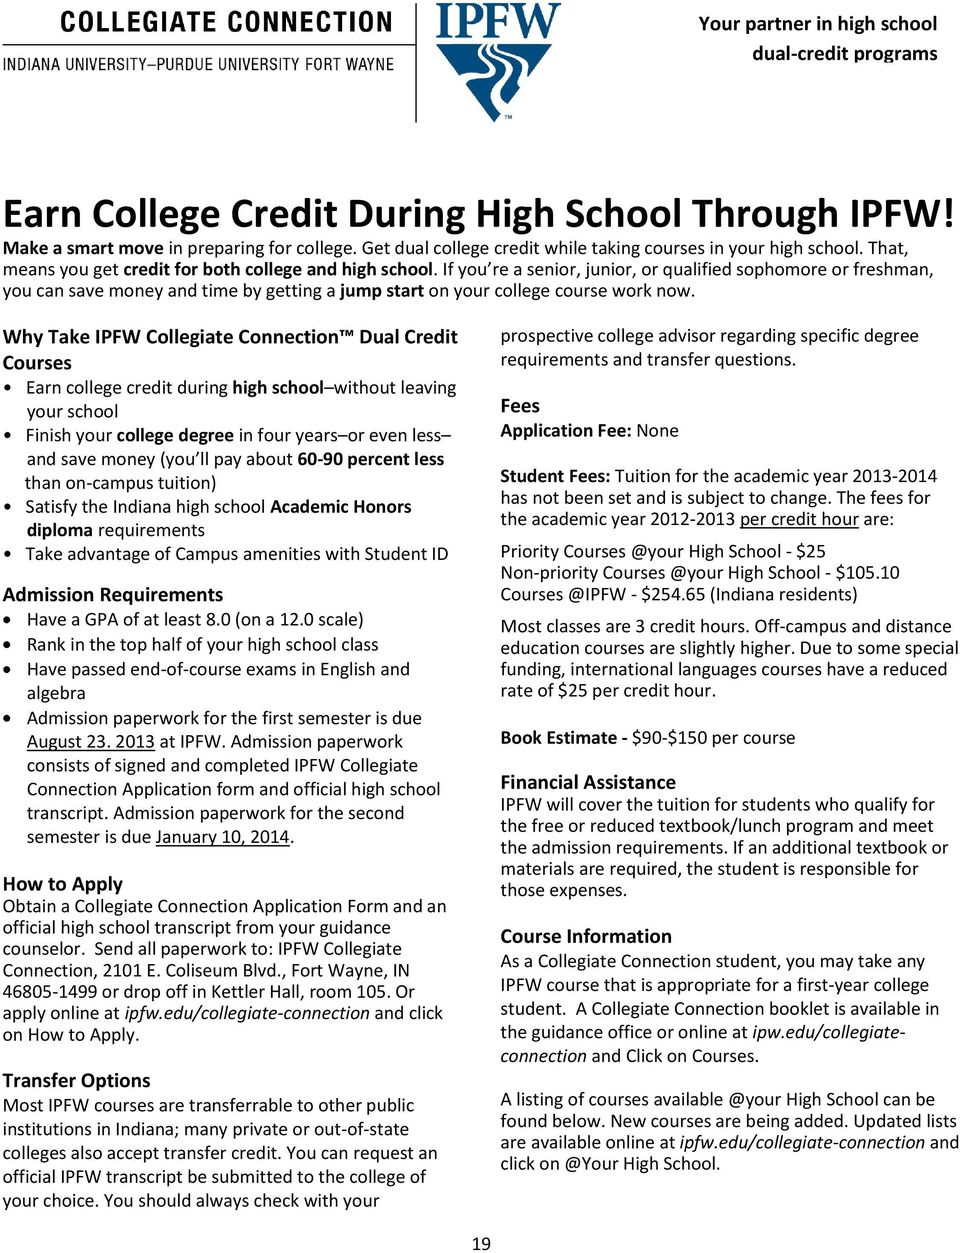 If you re a senior, junior, or qualified sophomore or freshman, you can save money and time by getting a jump start on your college course work now.